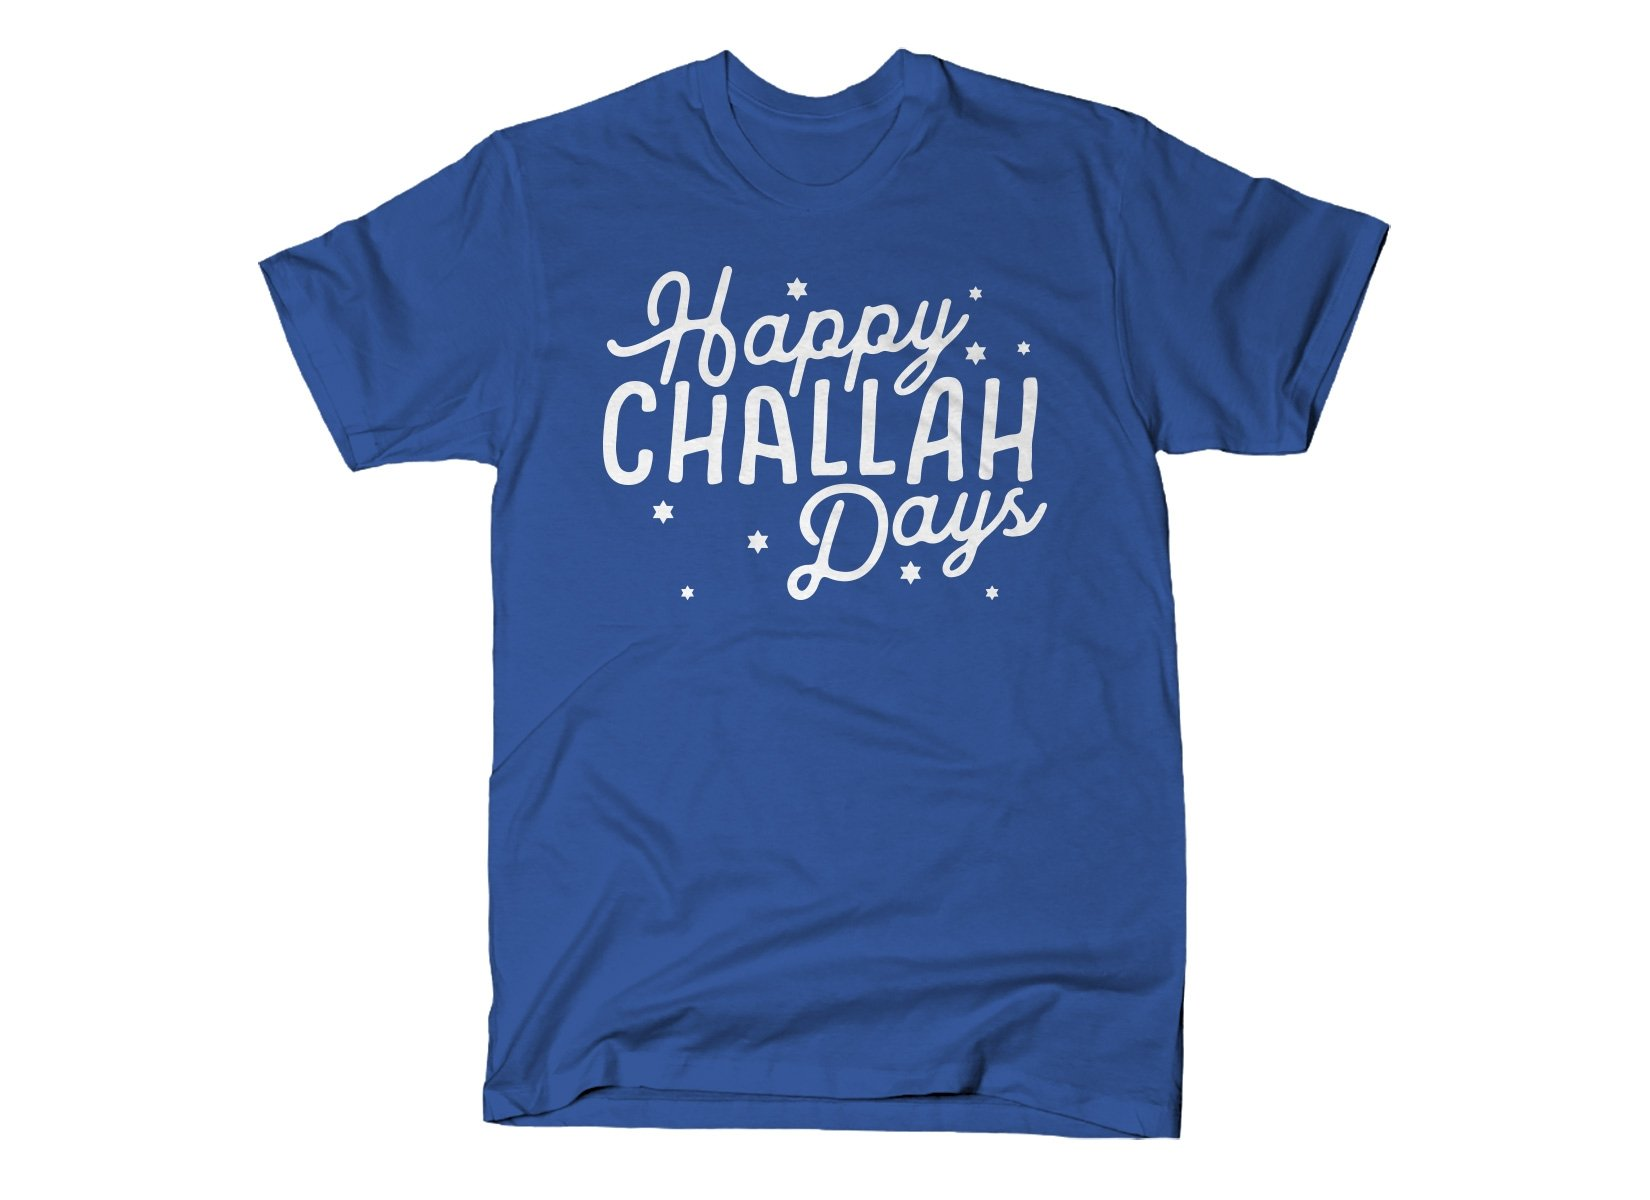 Happy Challah Days on Mens T-Shirt